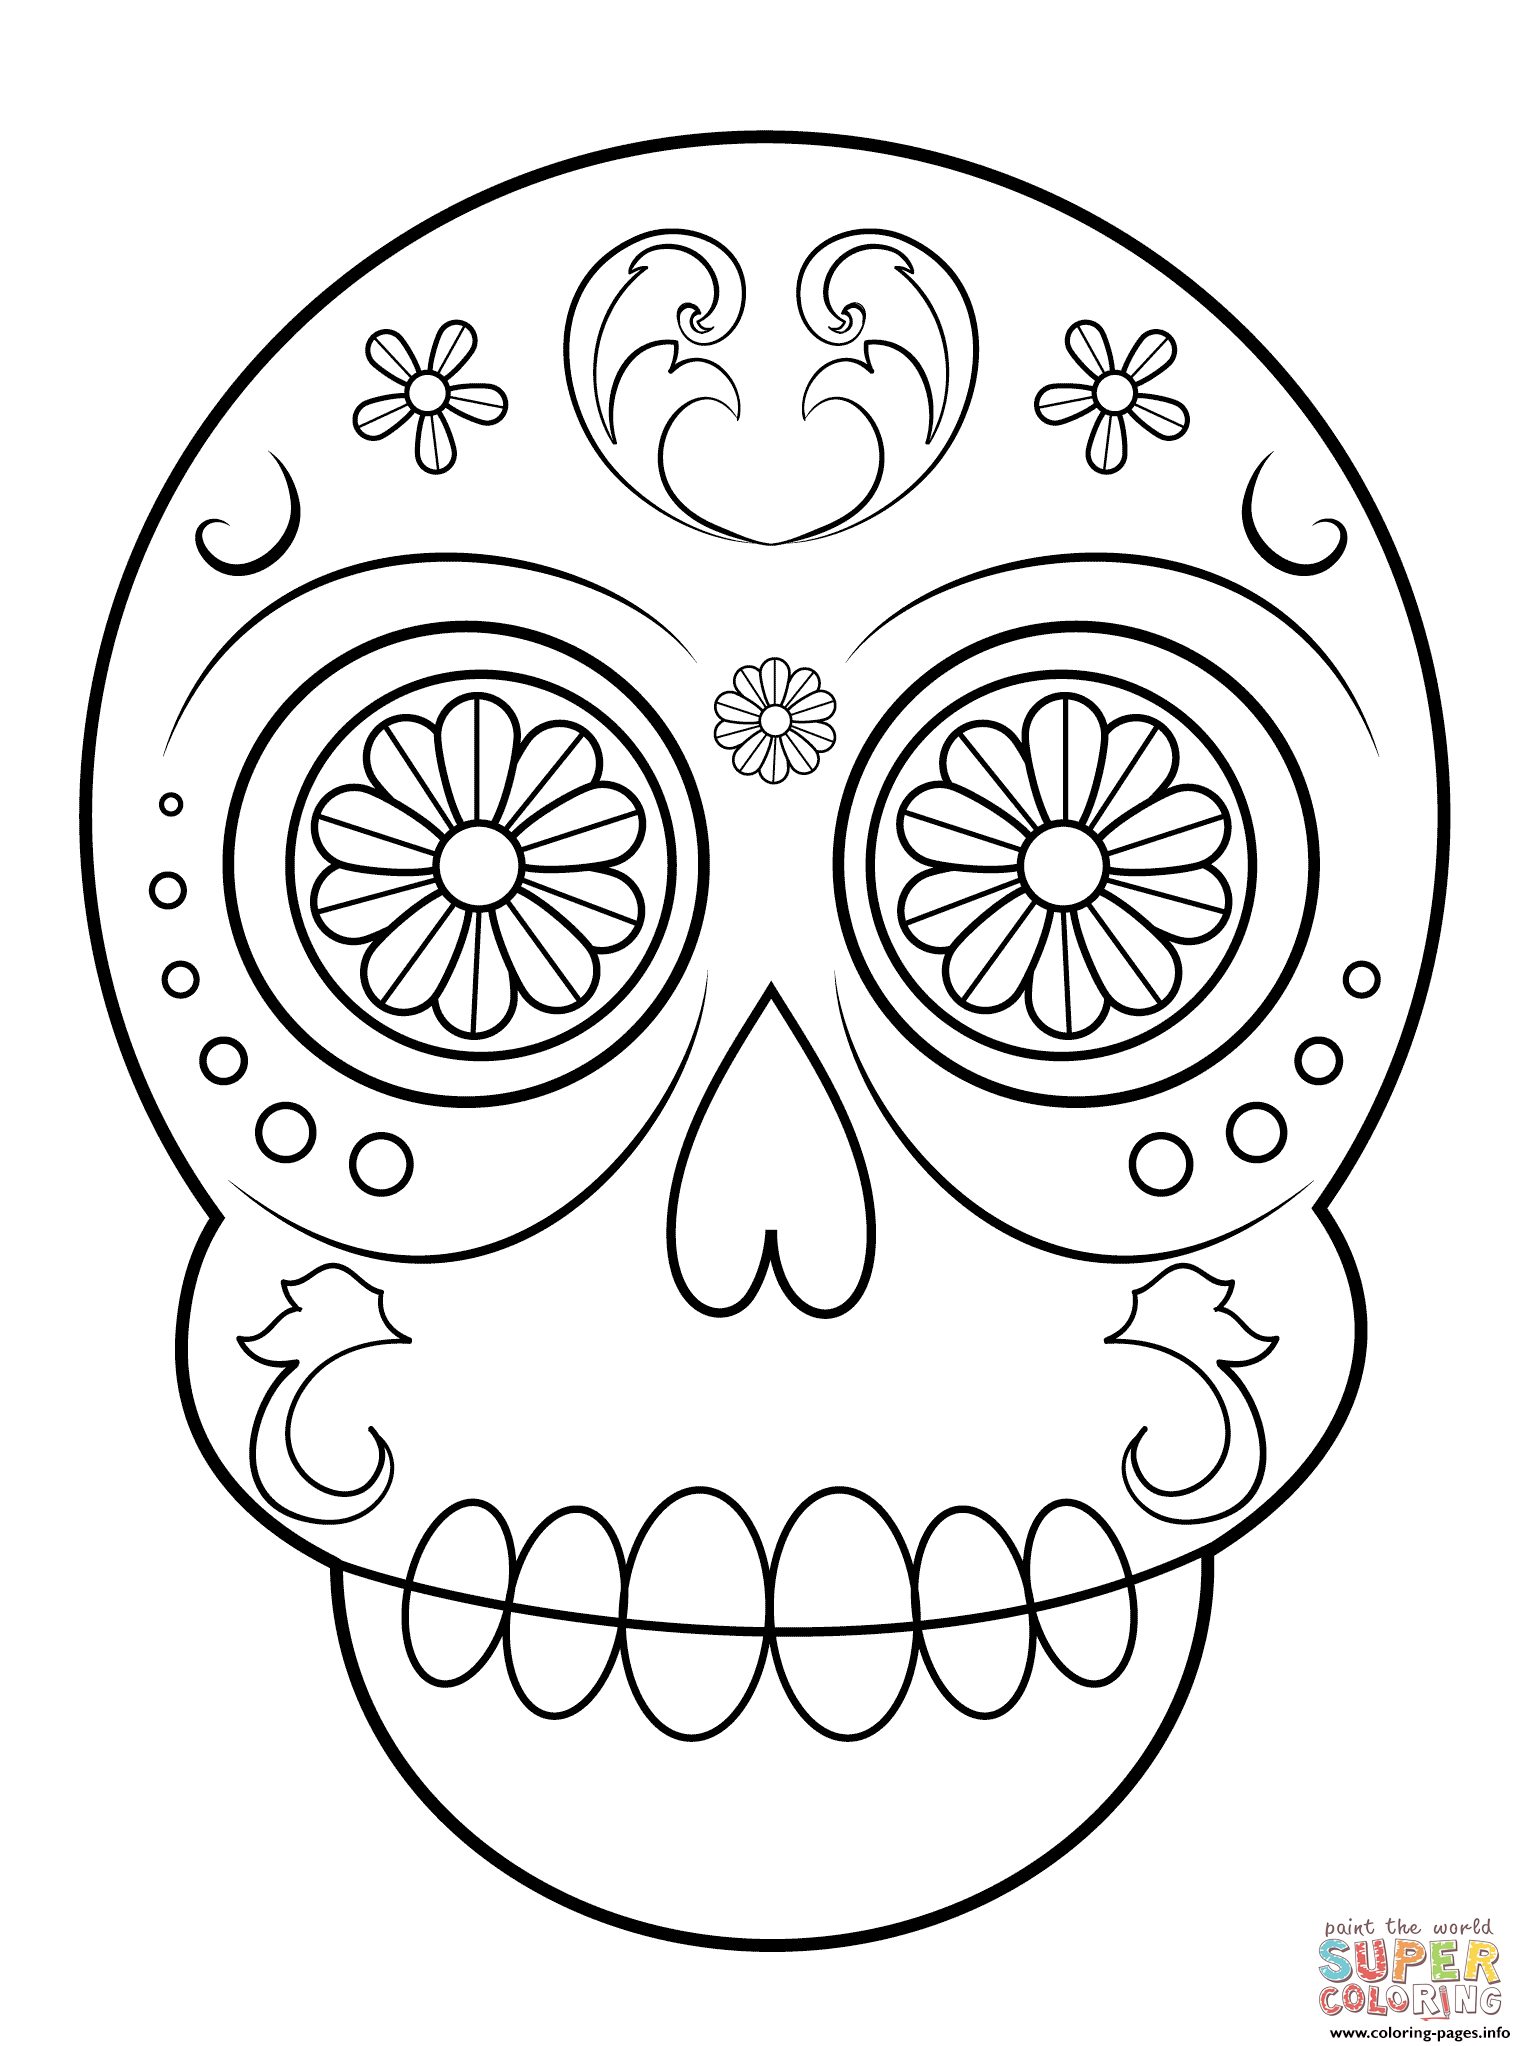 Sugar skull simple easy coloring pages printable Easy coloring books for adults